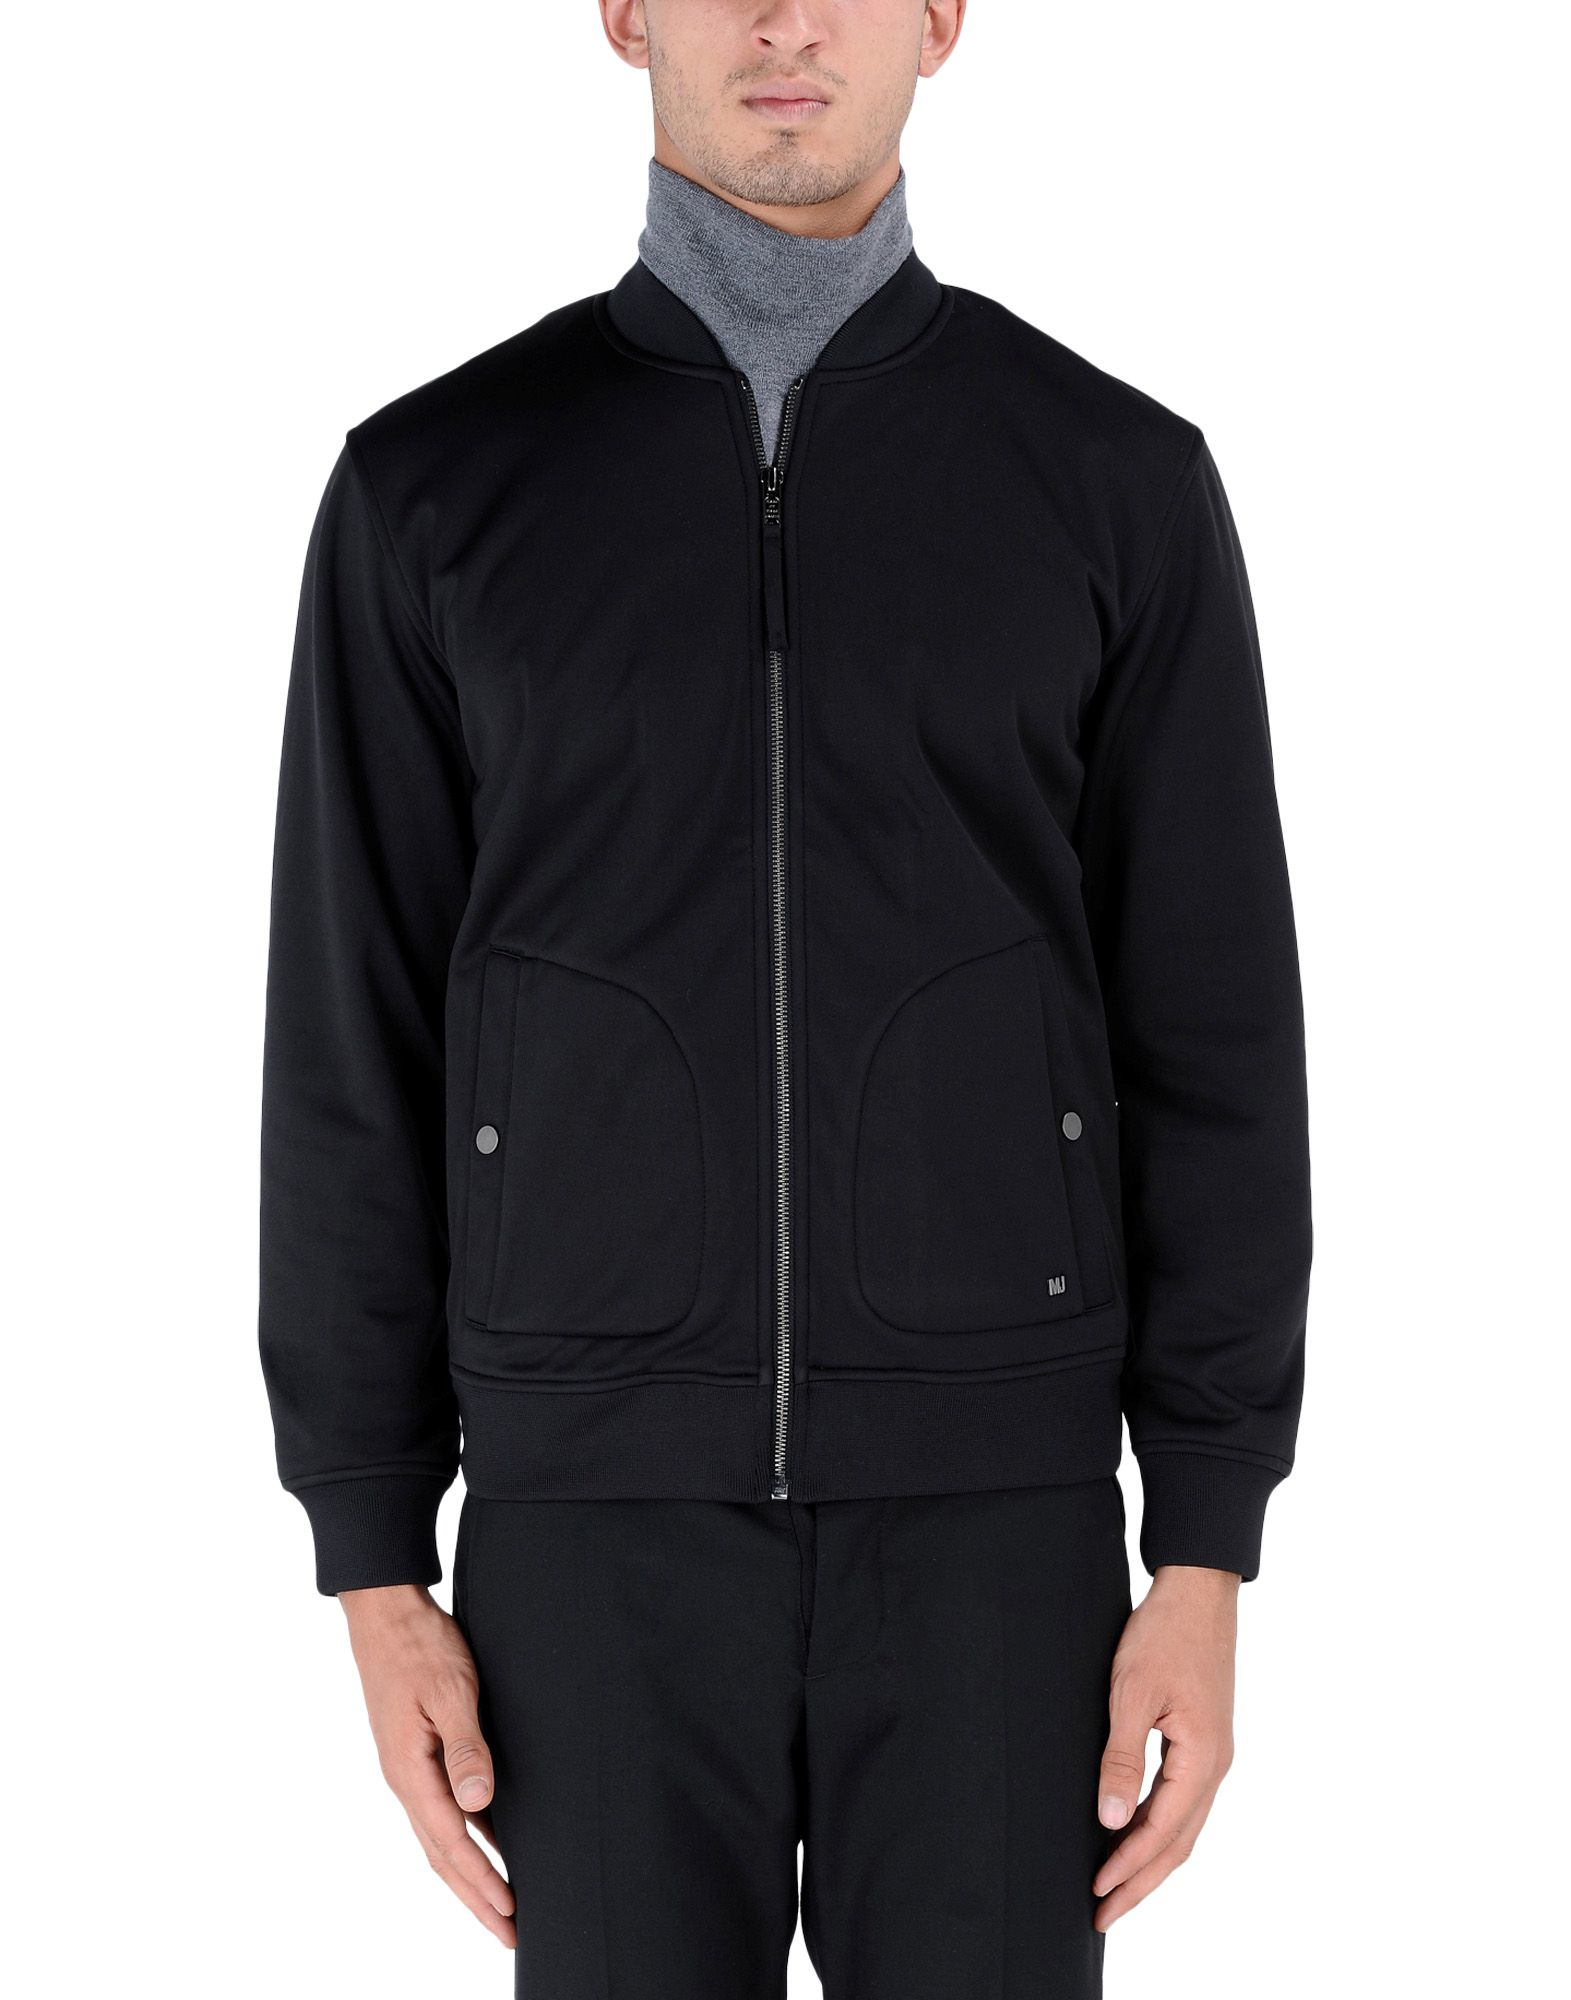 Marc by marc jacobs Jacket in Black for Men | Lyst